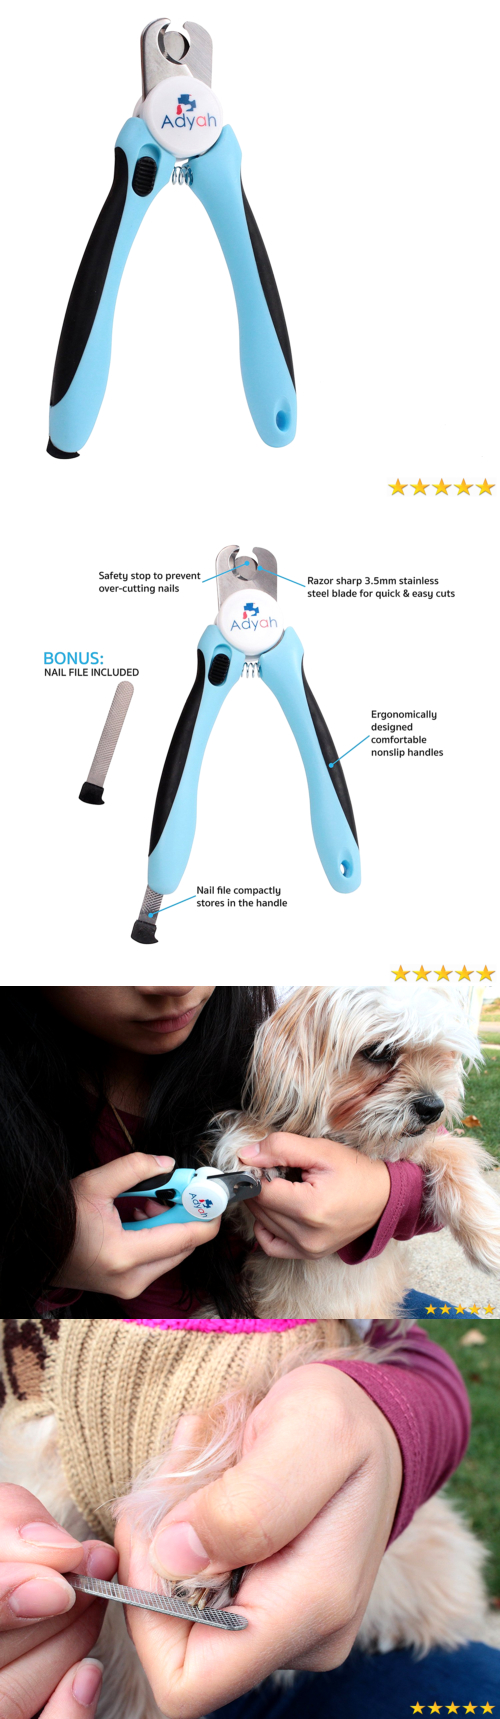 Claw Care Adyah Professional Dog Nail Clippers With Safety